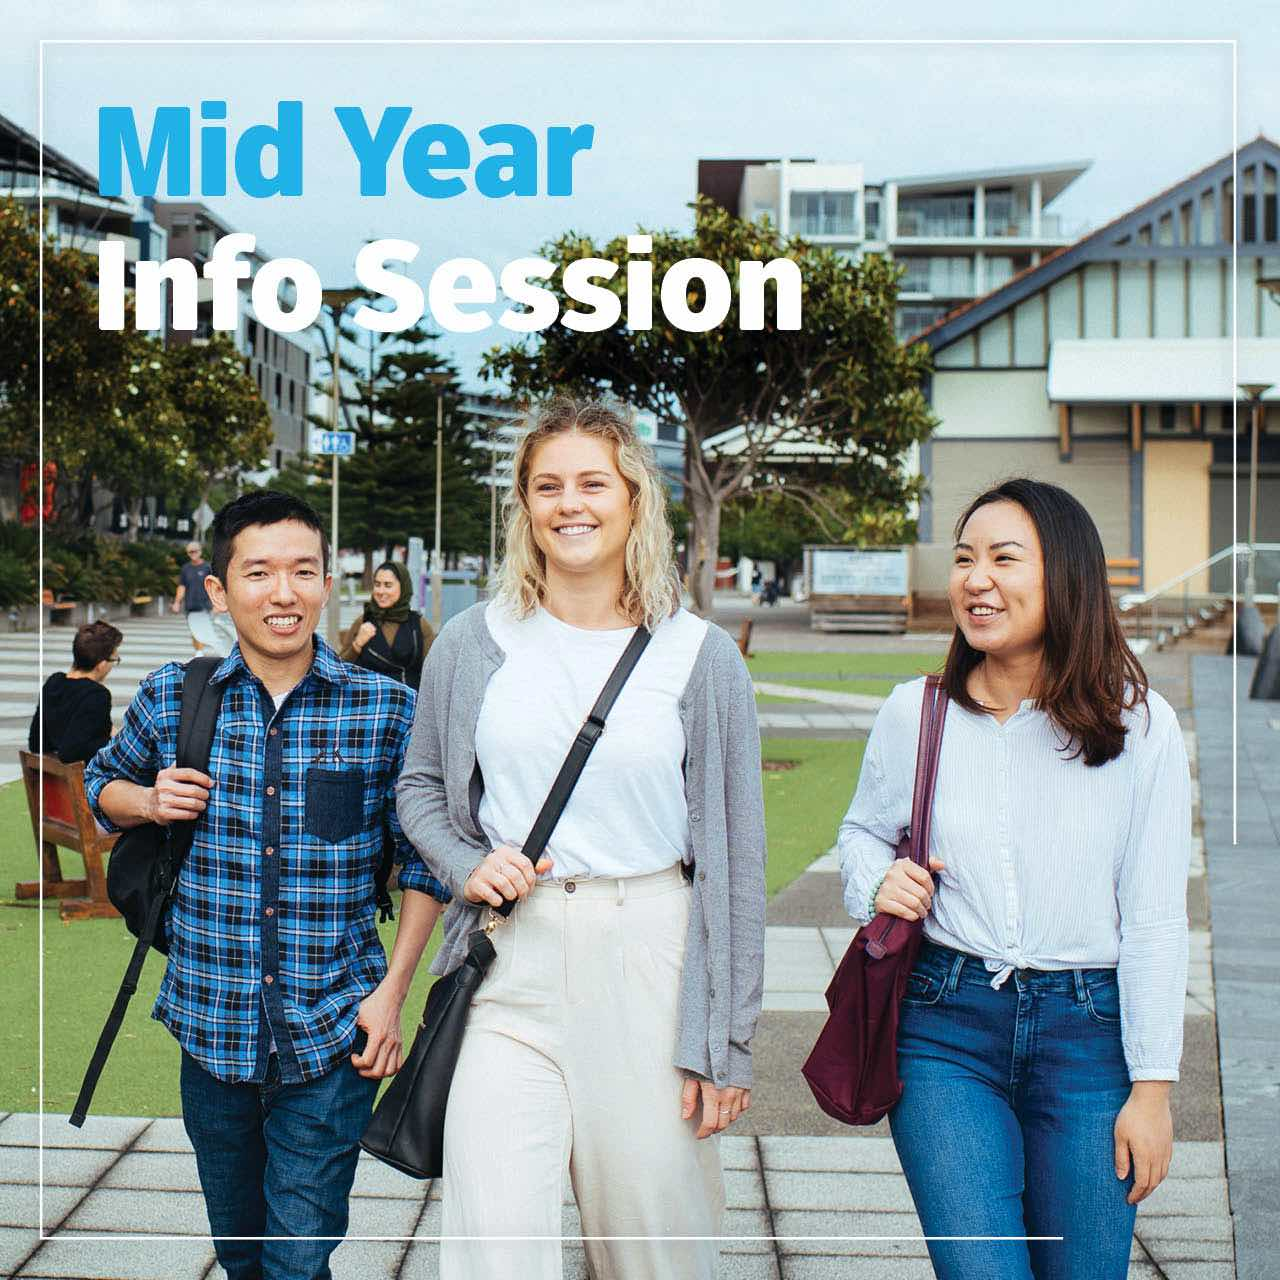 Mid year info session